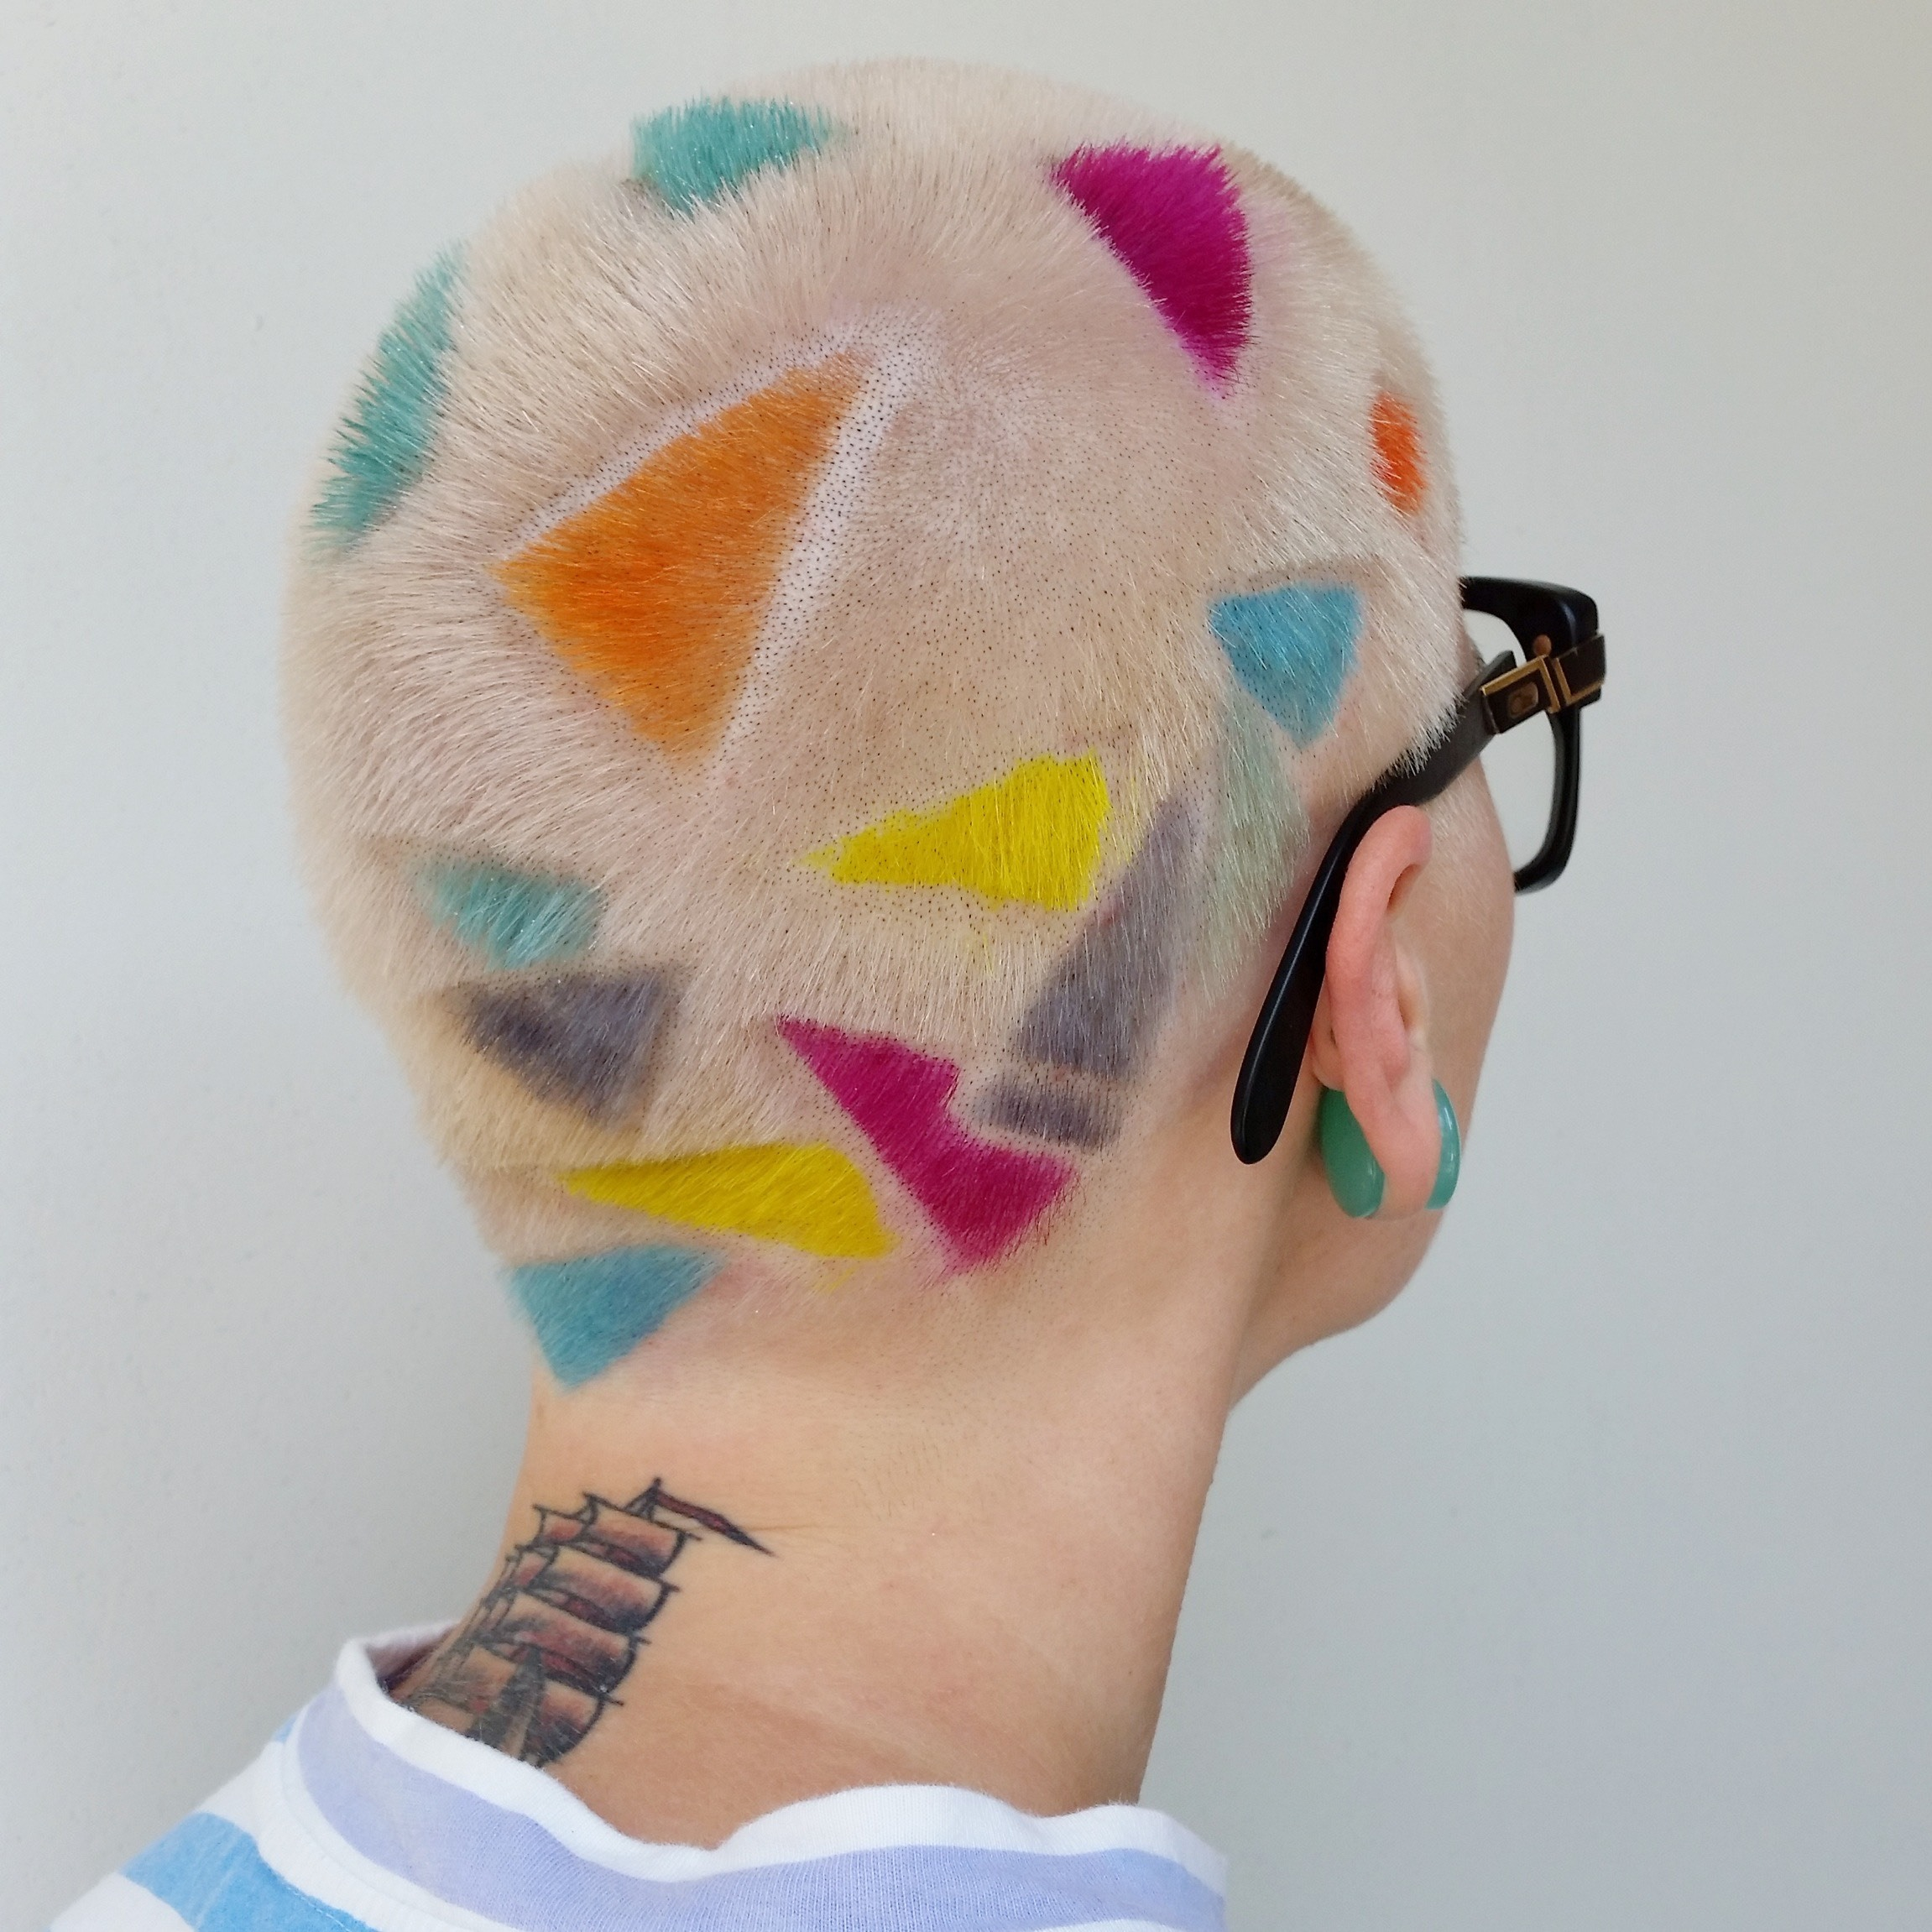 Geometric Buzz Cuts And Colorful Hair Tattoos Inspired By 90s Punk Culture I D